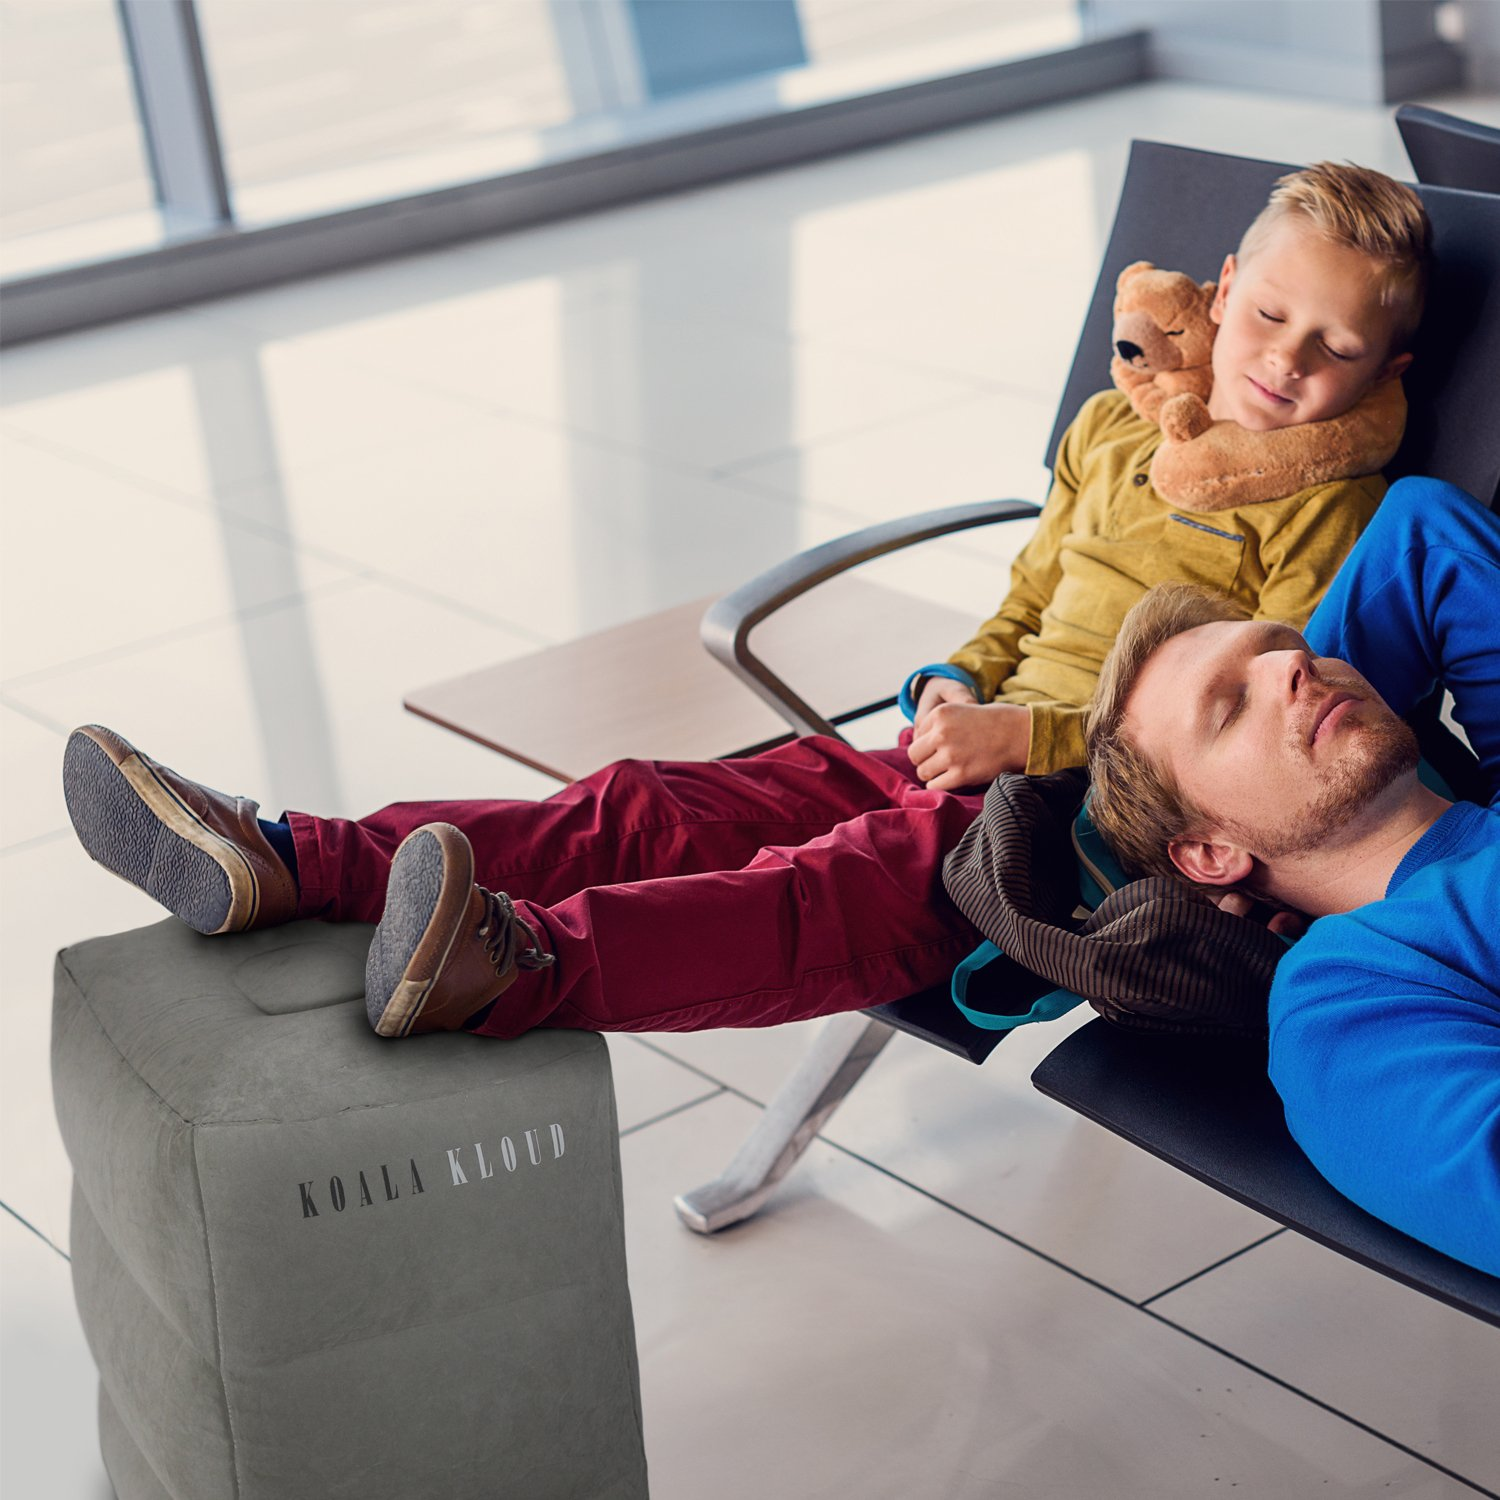 Inflatable Foot Rest Travel Pillow - For Toddlers & Kids, Best Accessory and Gadget for Traveling By Airplane or Car, Use As A Footrest Stool Under Office Desk, Fly With Your Legs Up - By Koala Kloud by Koala Kloud (Image #9)